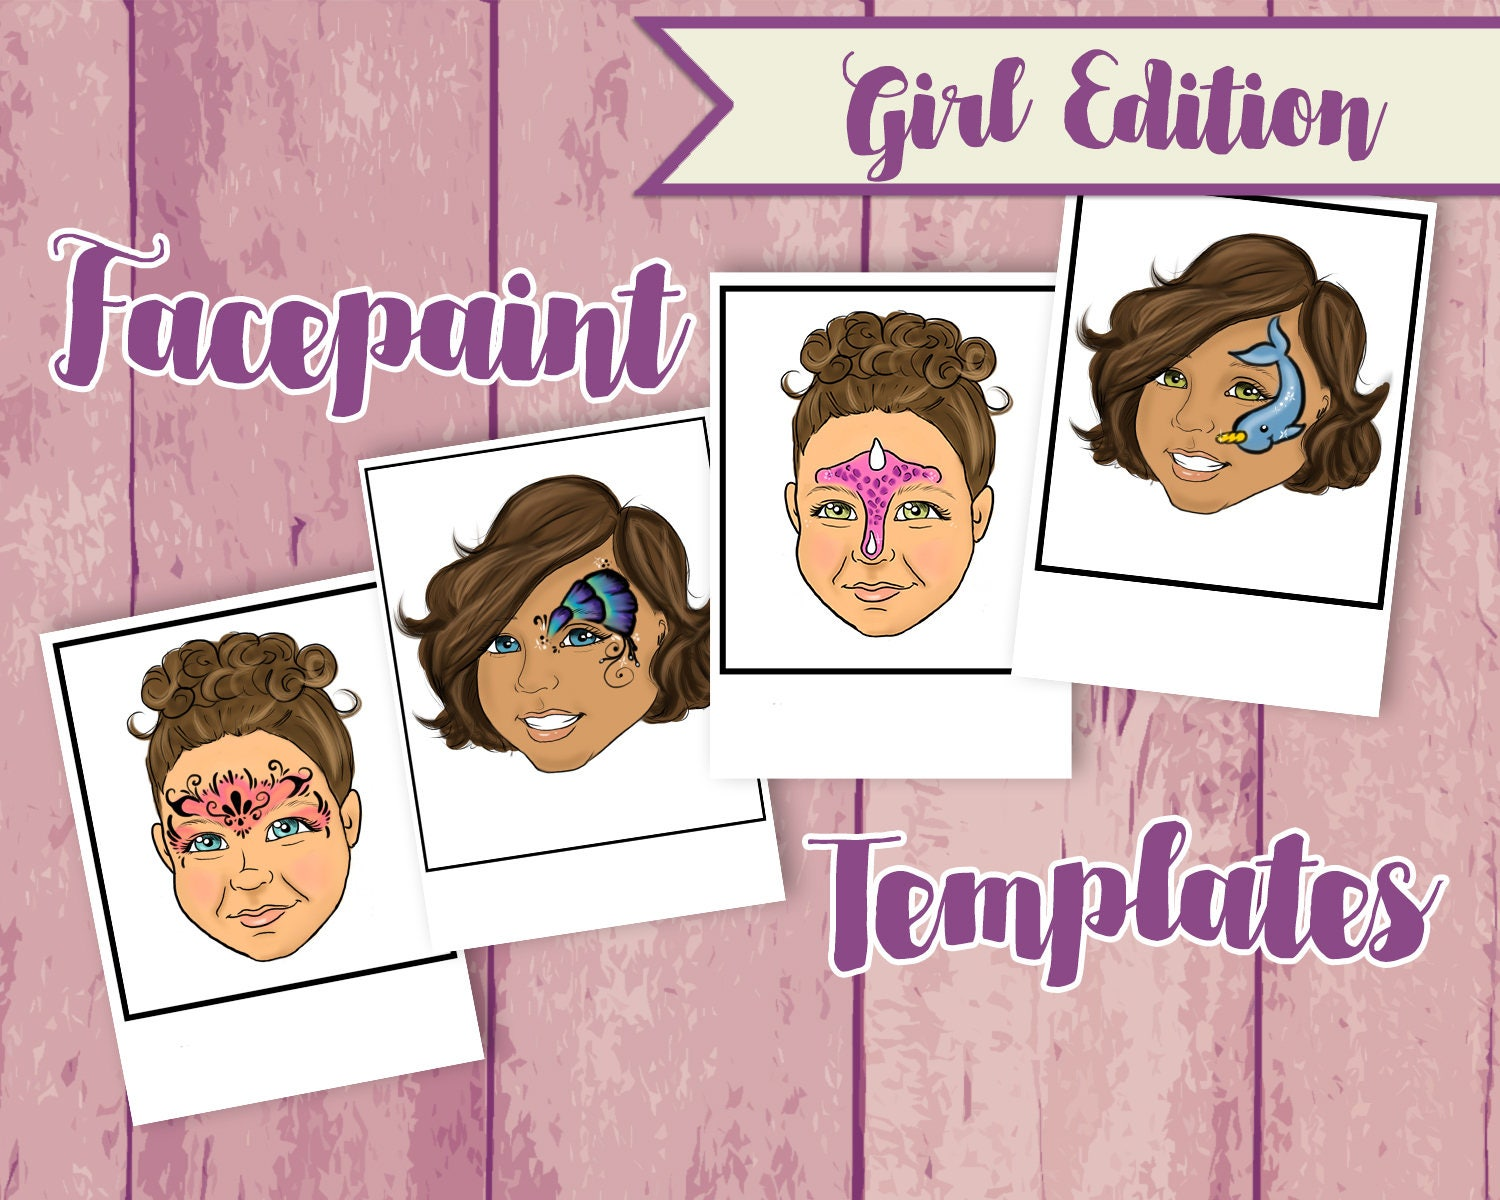 Pretty 1 Hexagon Template Huge 10 Steps To Creating A Resume Rectangular 10 Tips For A Great Resume 100 Powerful Resume Words Old 1099 Agreement Template Pink12 Hour Schedule Template Girl Face Painting Menu   Face Paint Pick Outs   Face Painting ..